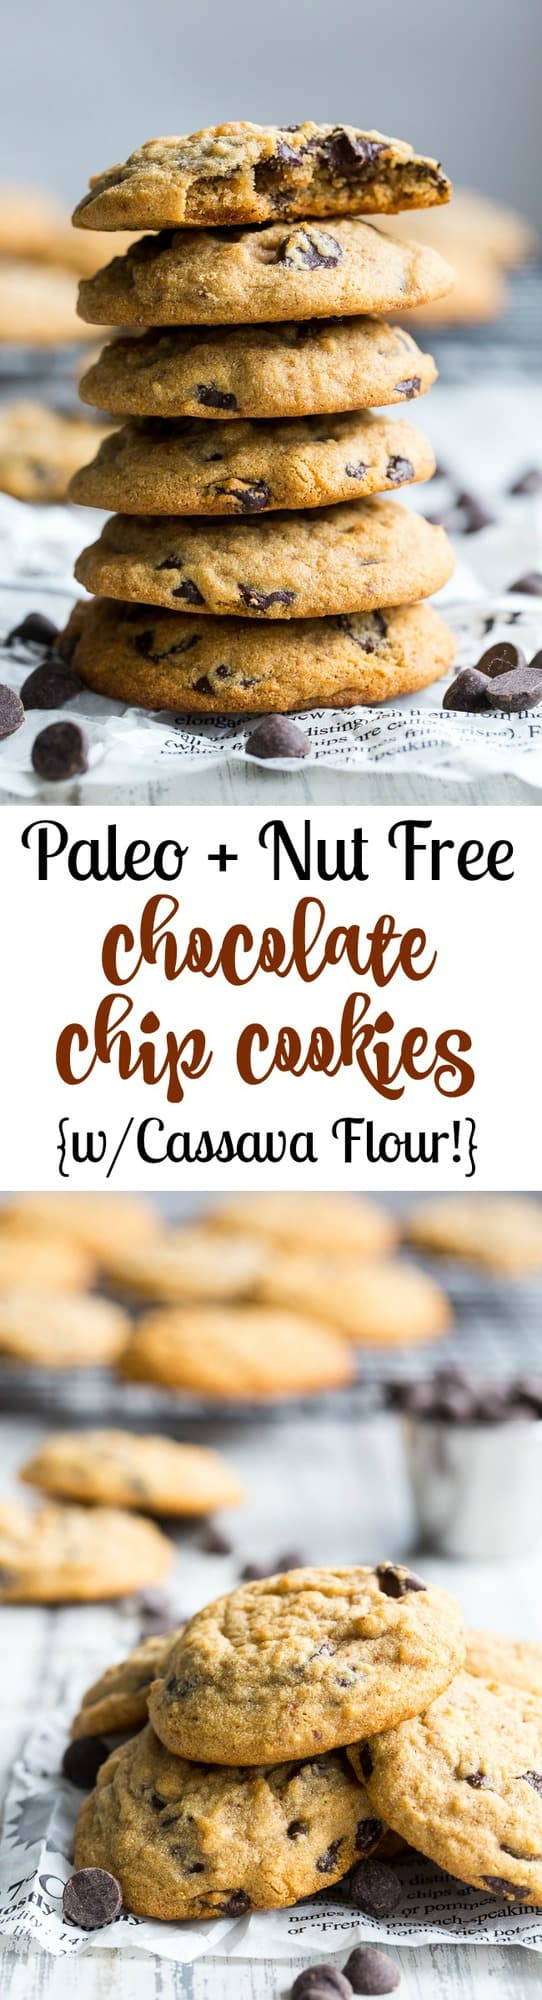 These soft chewy paleo chocolate chip cookies are made with cassava flour, making them nut free PLUS grain free and gluten free.  The cassava flour makes the flavor very similar to traditional chocolate chip cookies, so you know everyone will love them!